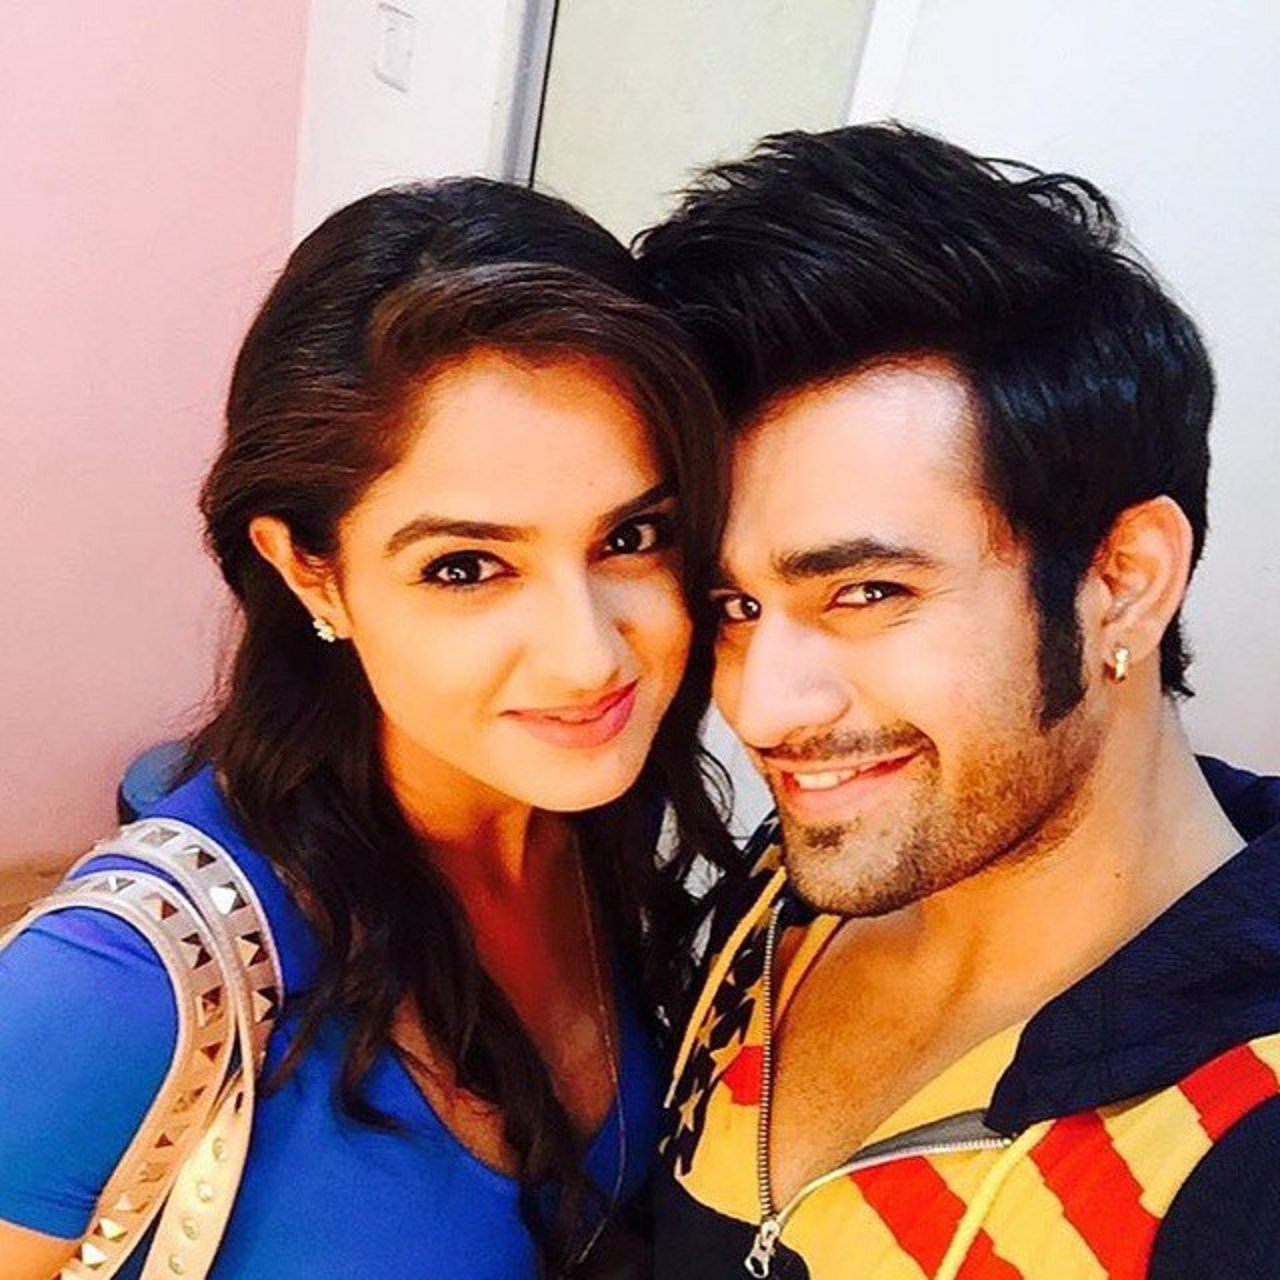 abeer & meher couple wallpaper download | every couples hd